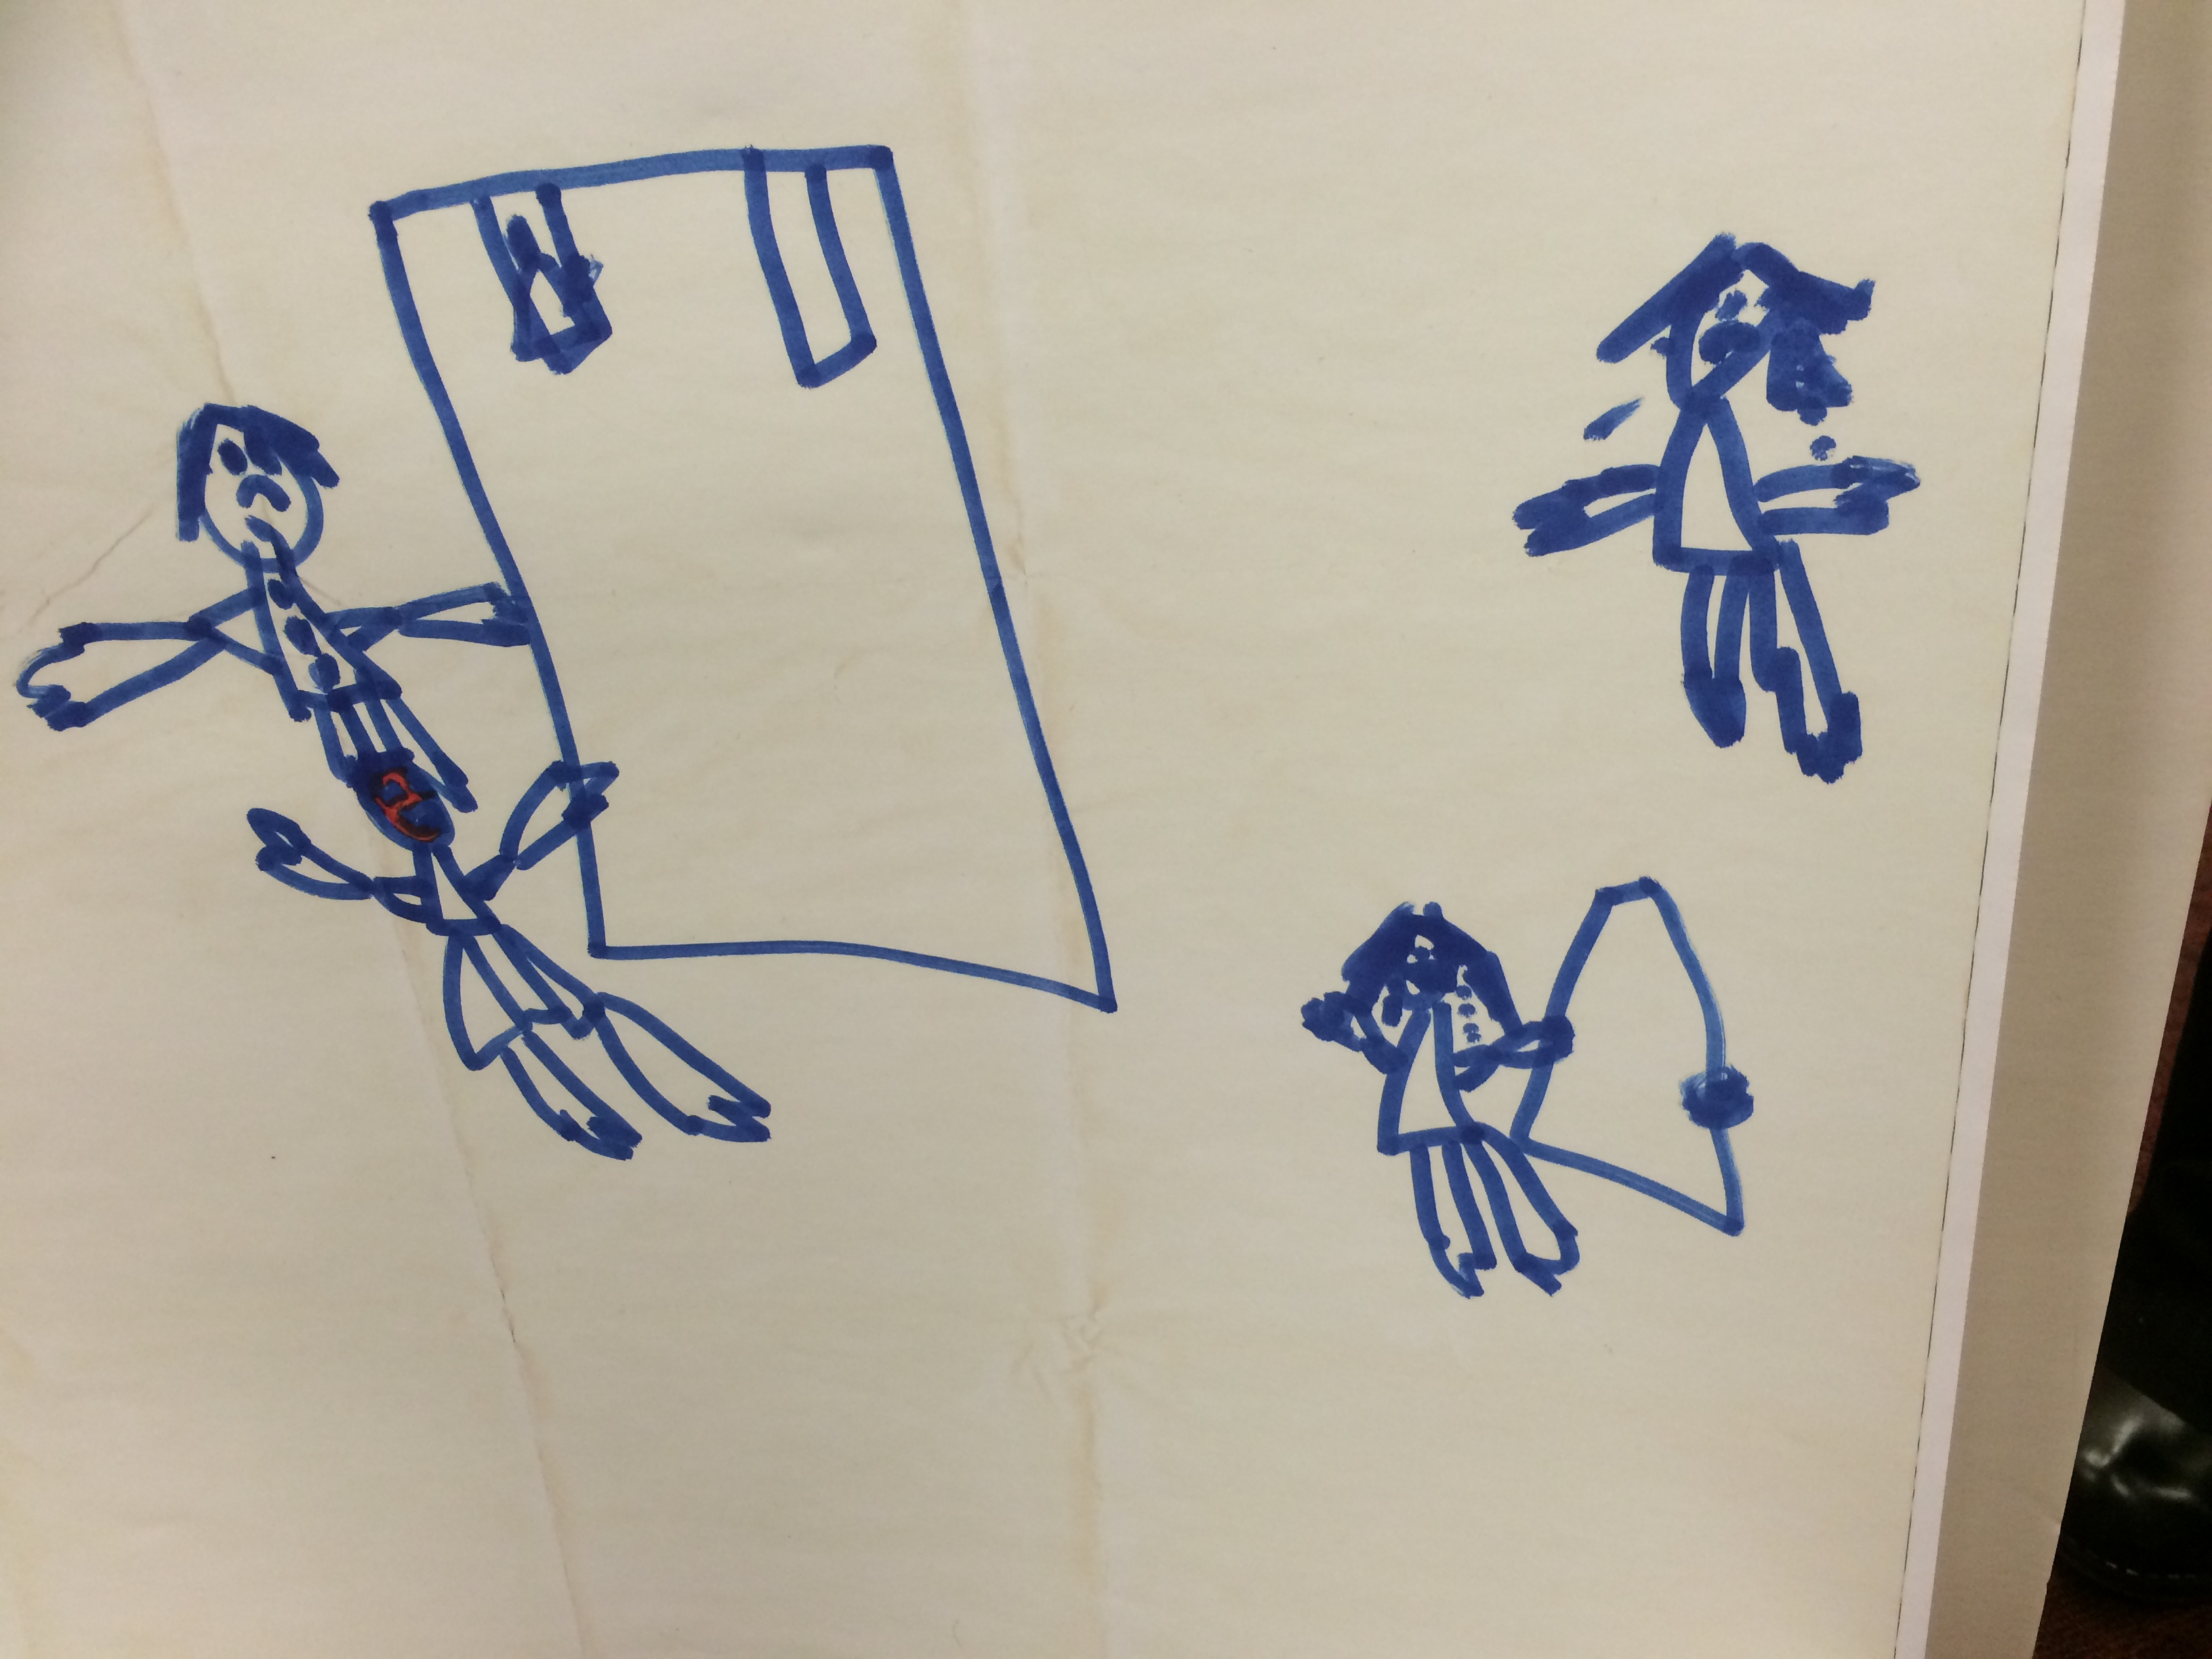 A drawing by Ashley and Tom Fallis' child presented in court (credit: CBS)